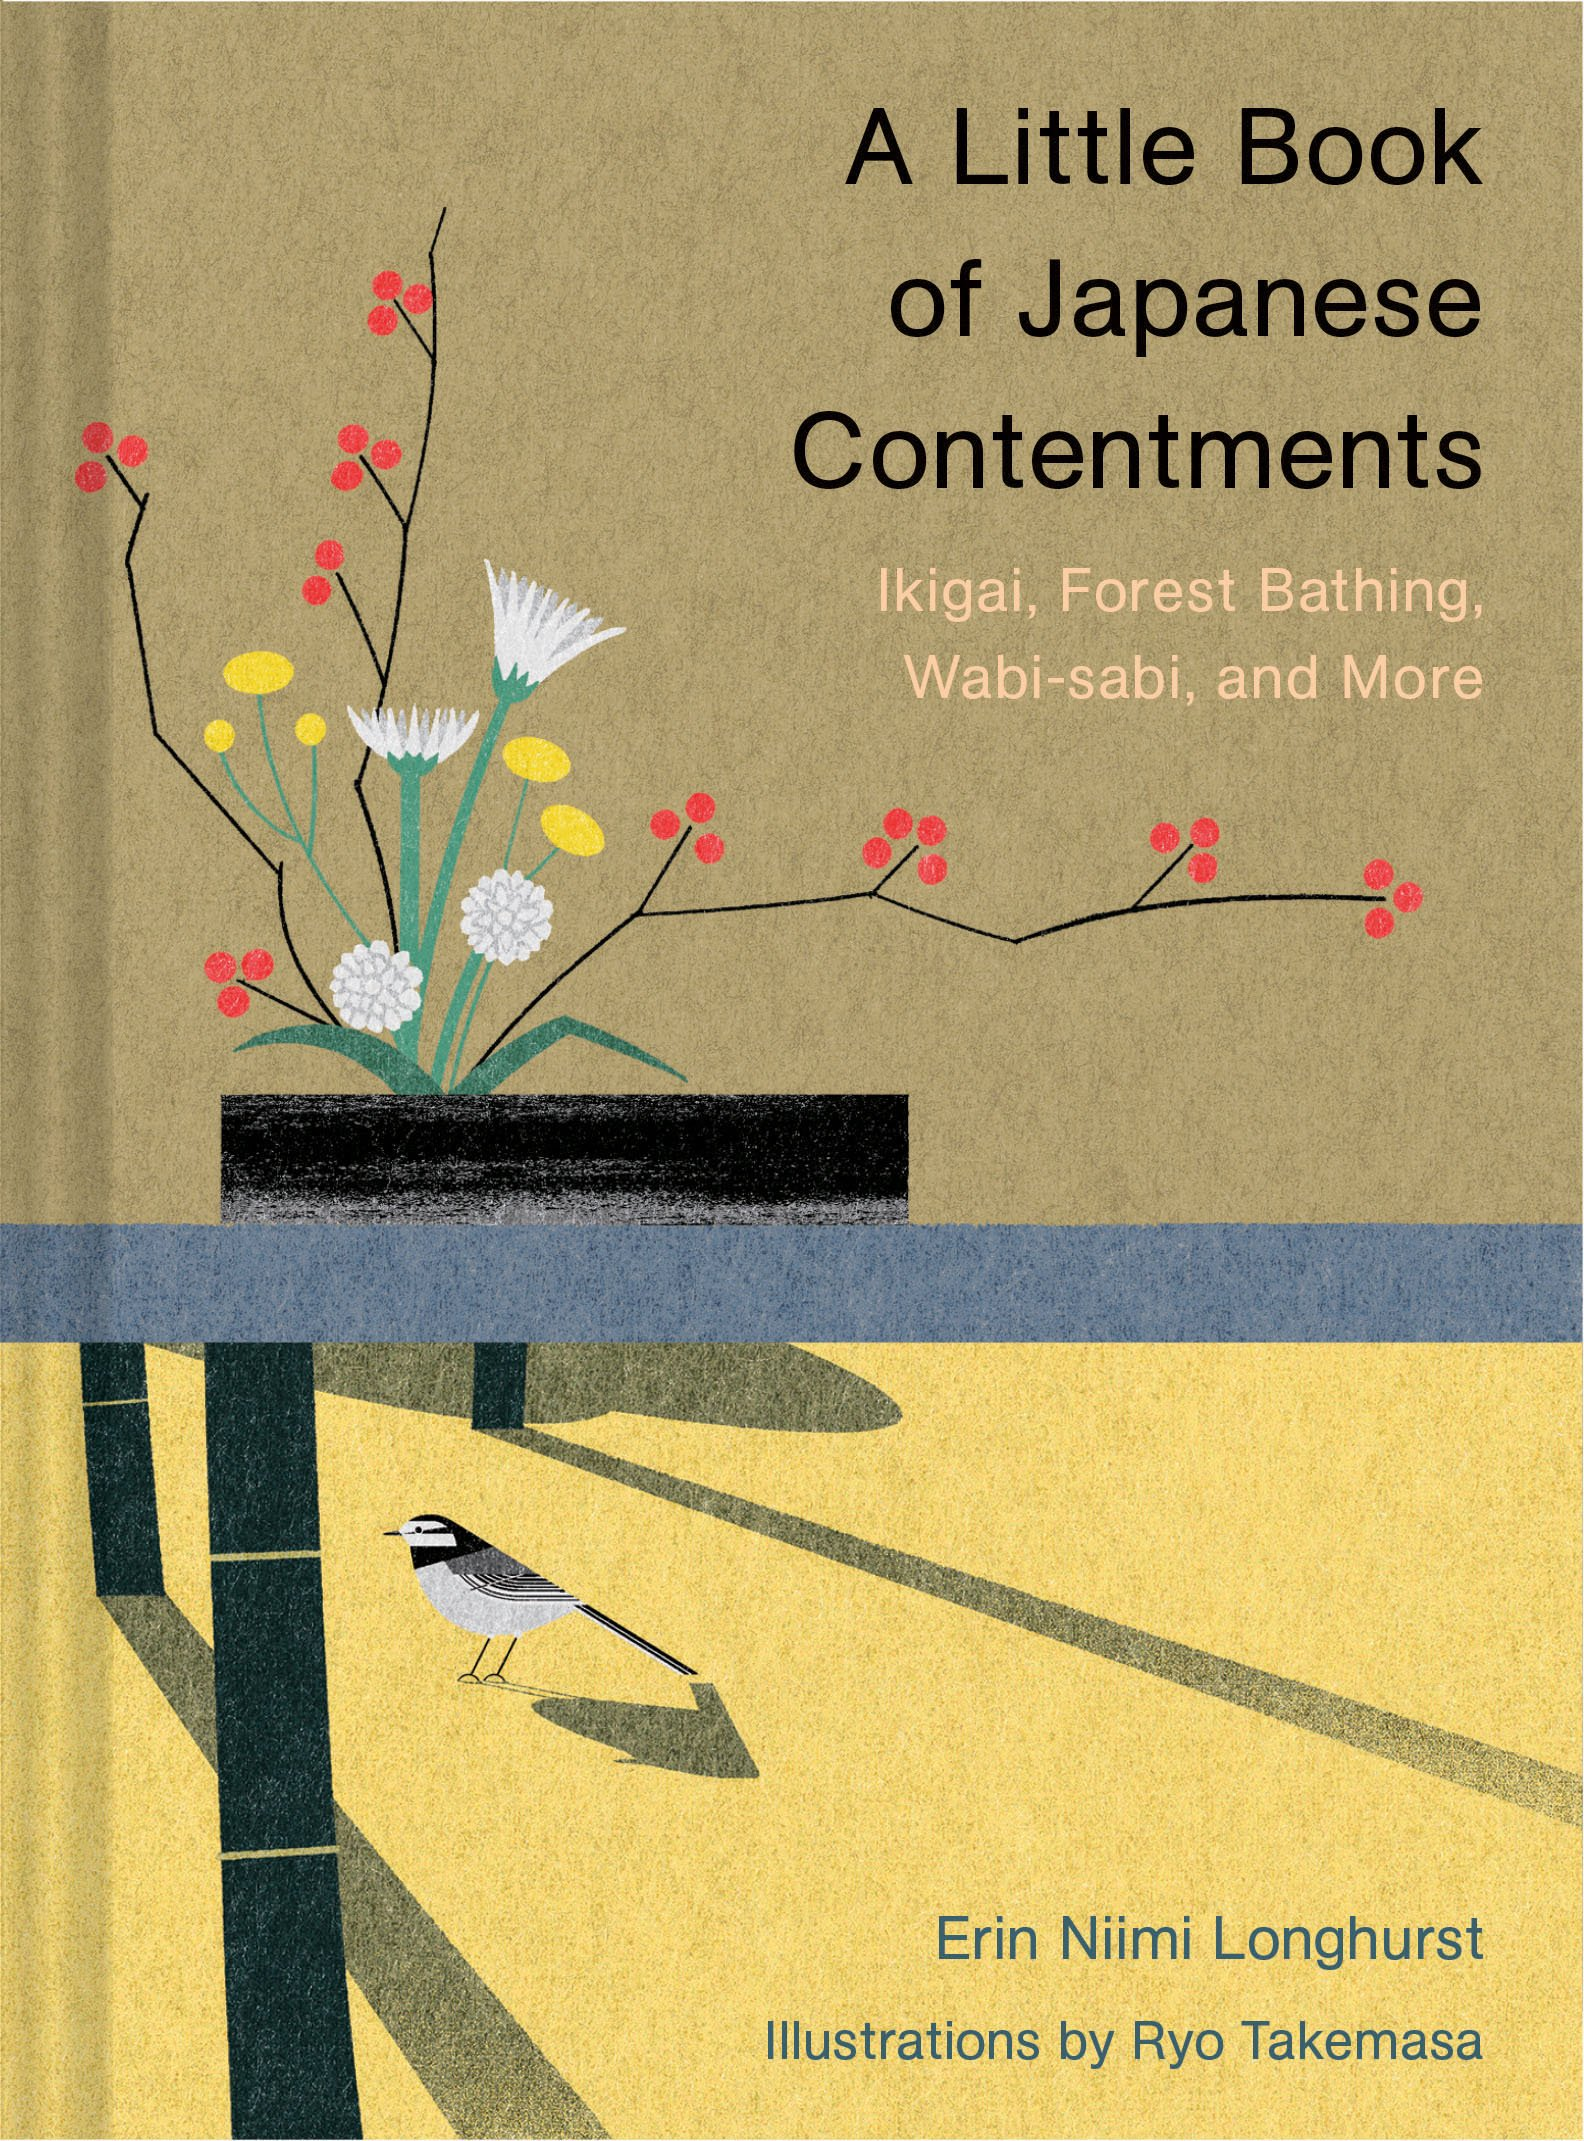 A Little Book of Japanese Contentments: Ikigai, Forest Bathing, Wabi-sabi, and More (Japanese Books, Mindfulness Books…